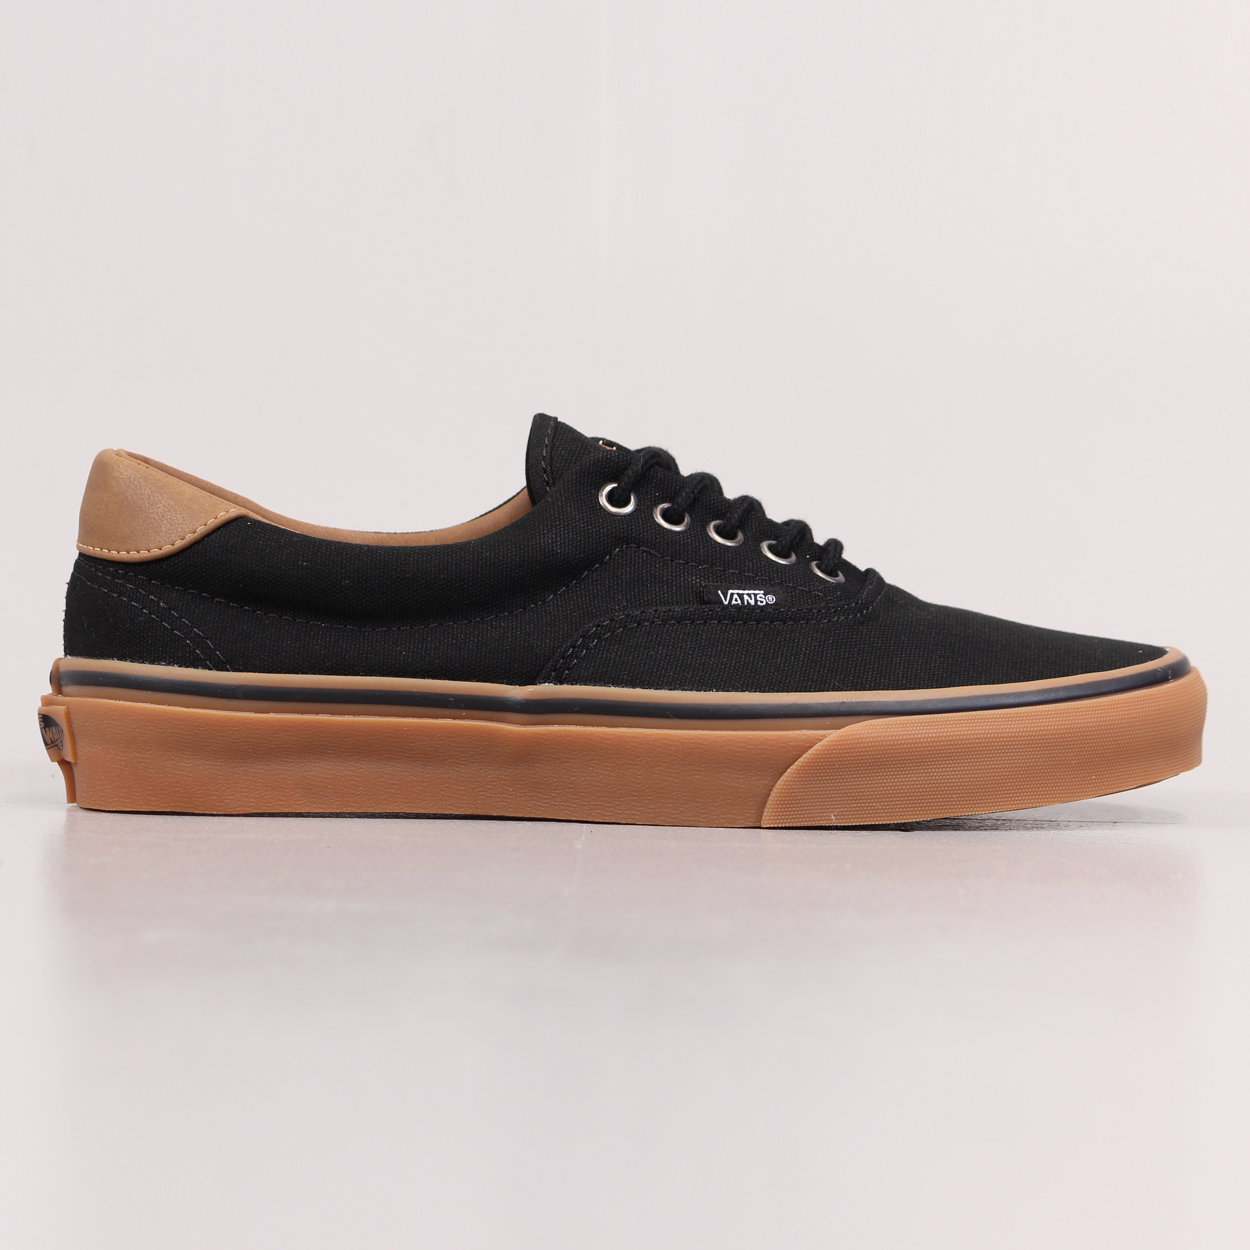 Vans Mens Canvas and Leather Era 59 Skate Shoes Black Gum Brown £39.00 a09904c8c